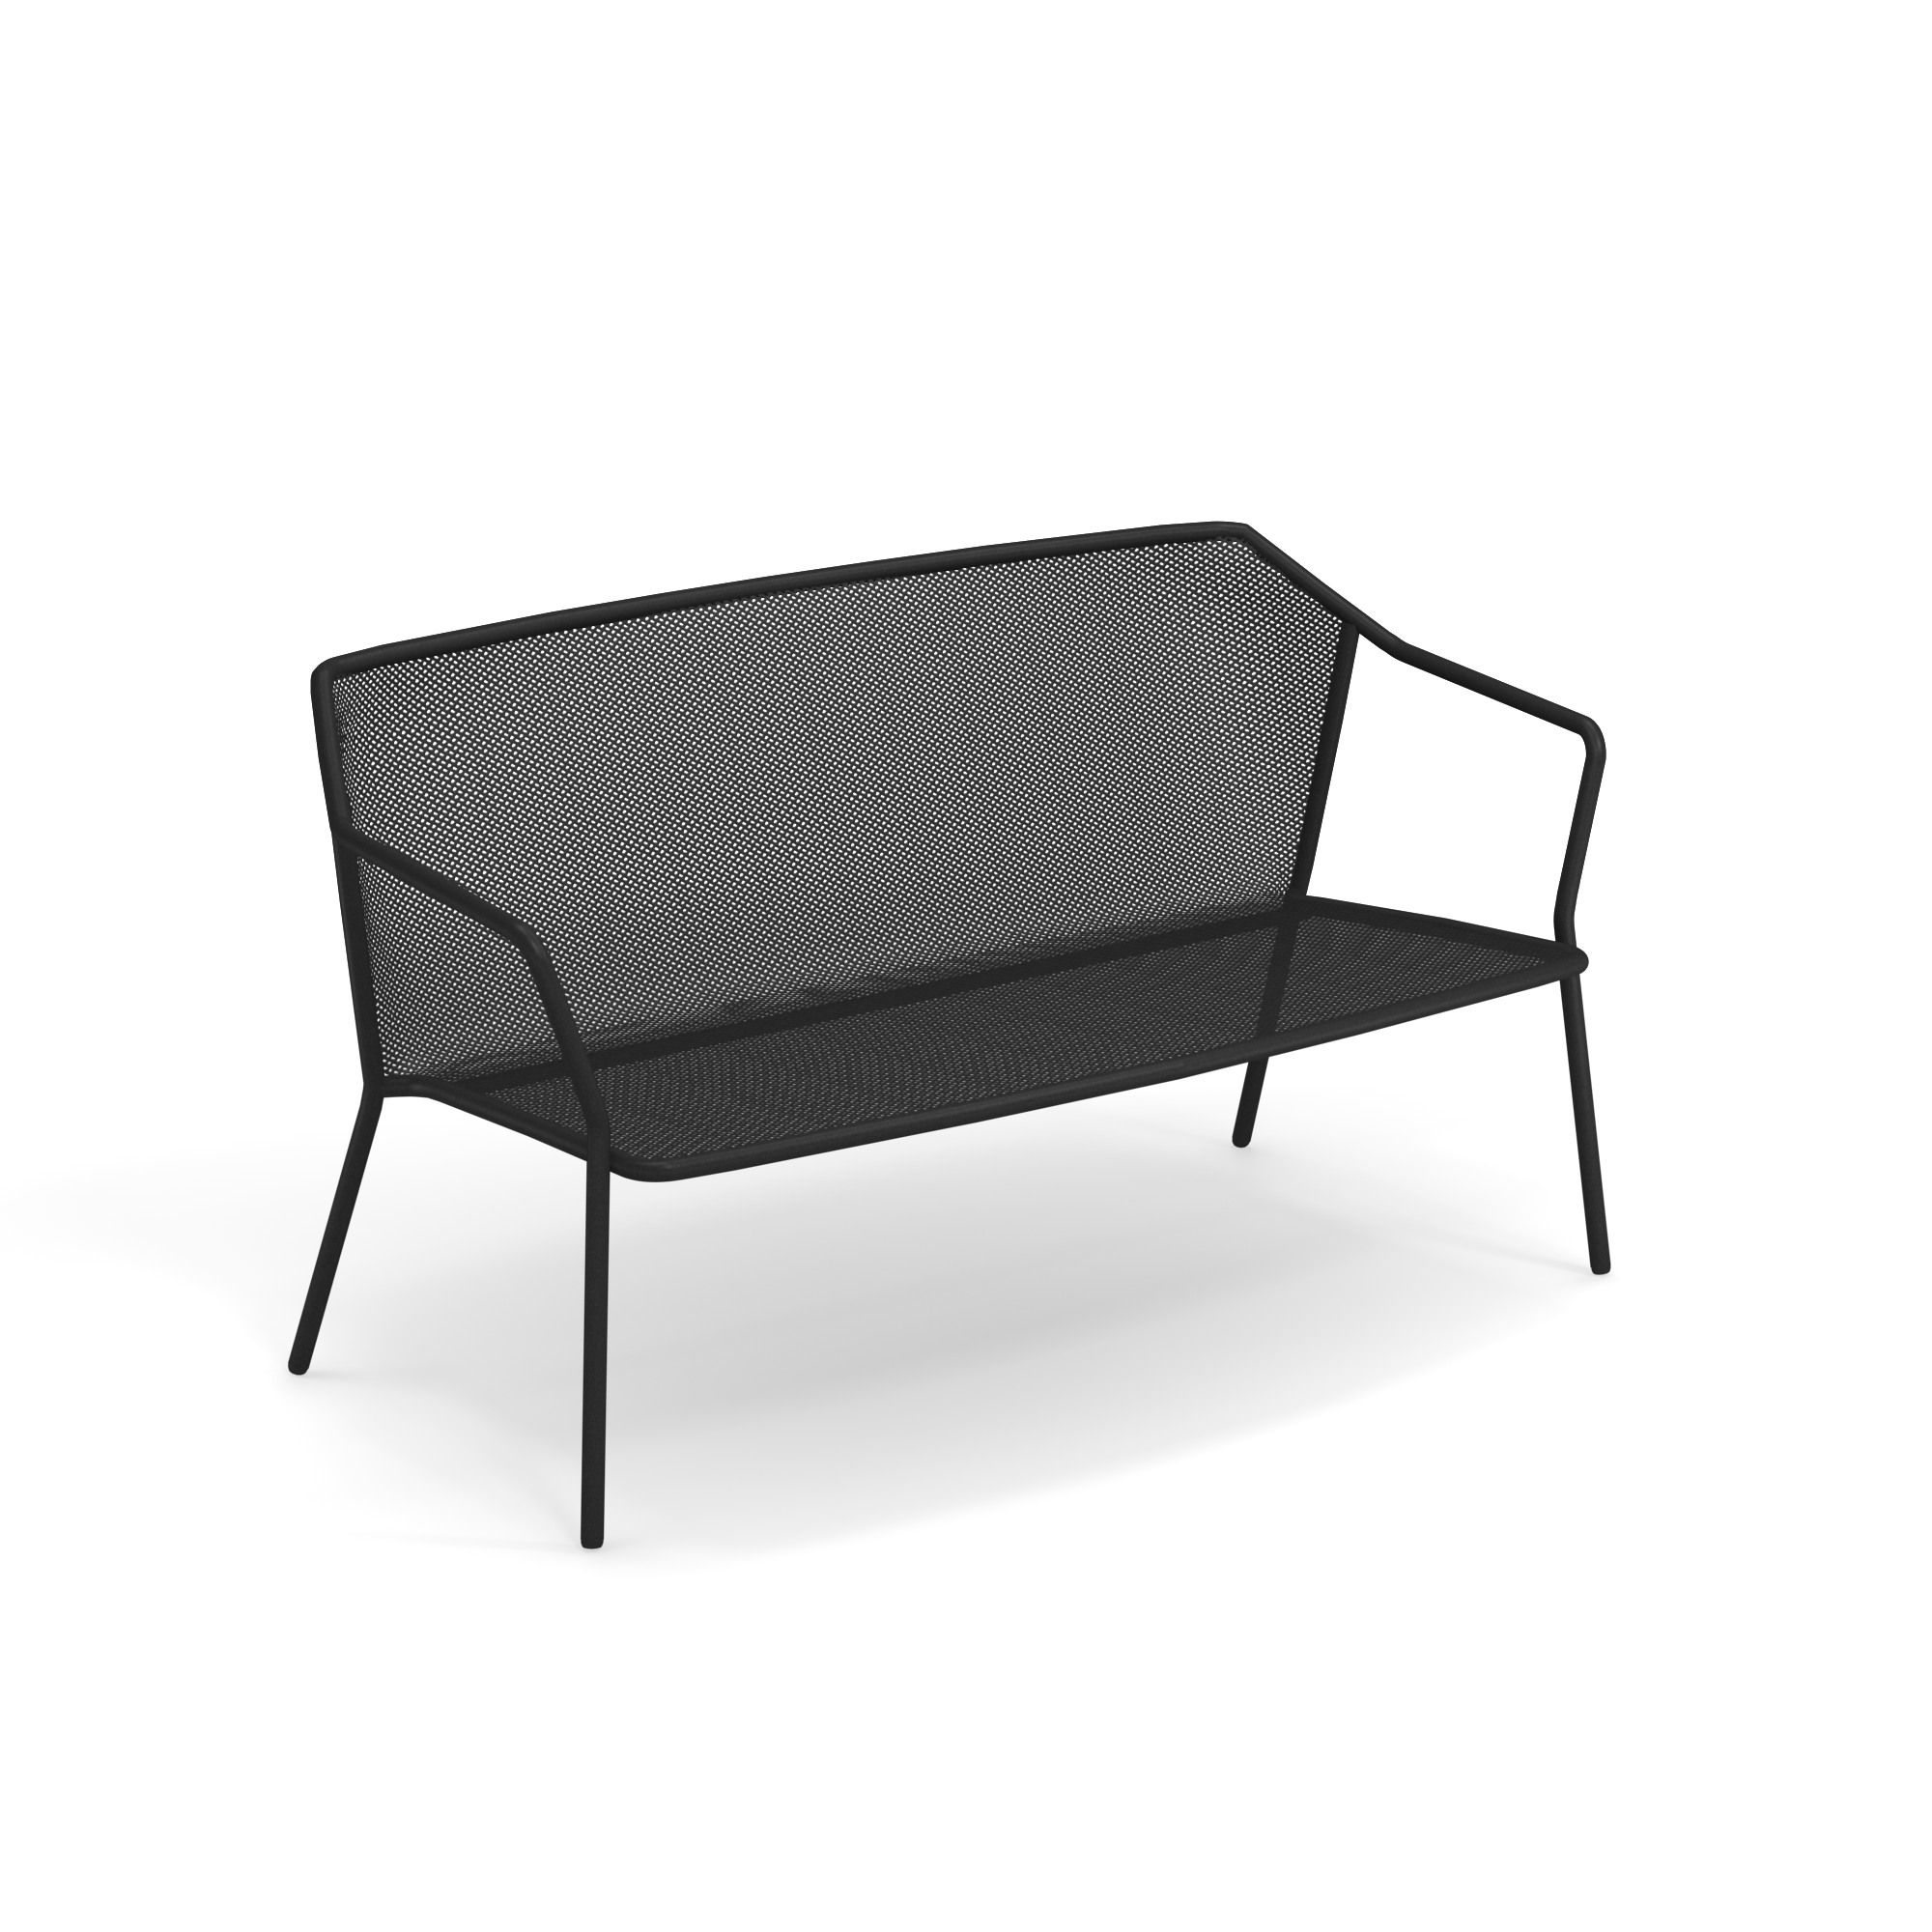 emuamericas, llc 527-24 sofa seating, outdoor